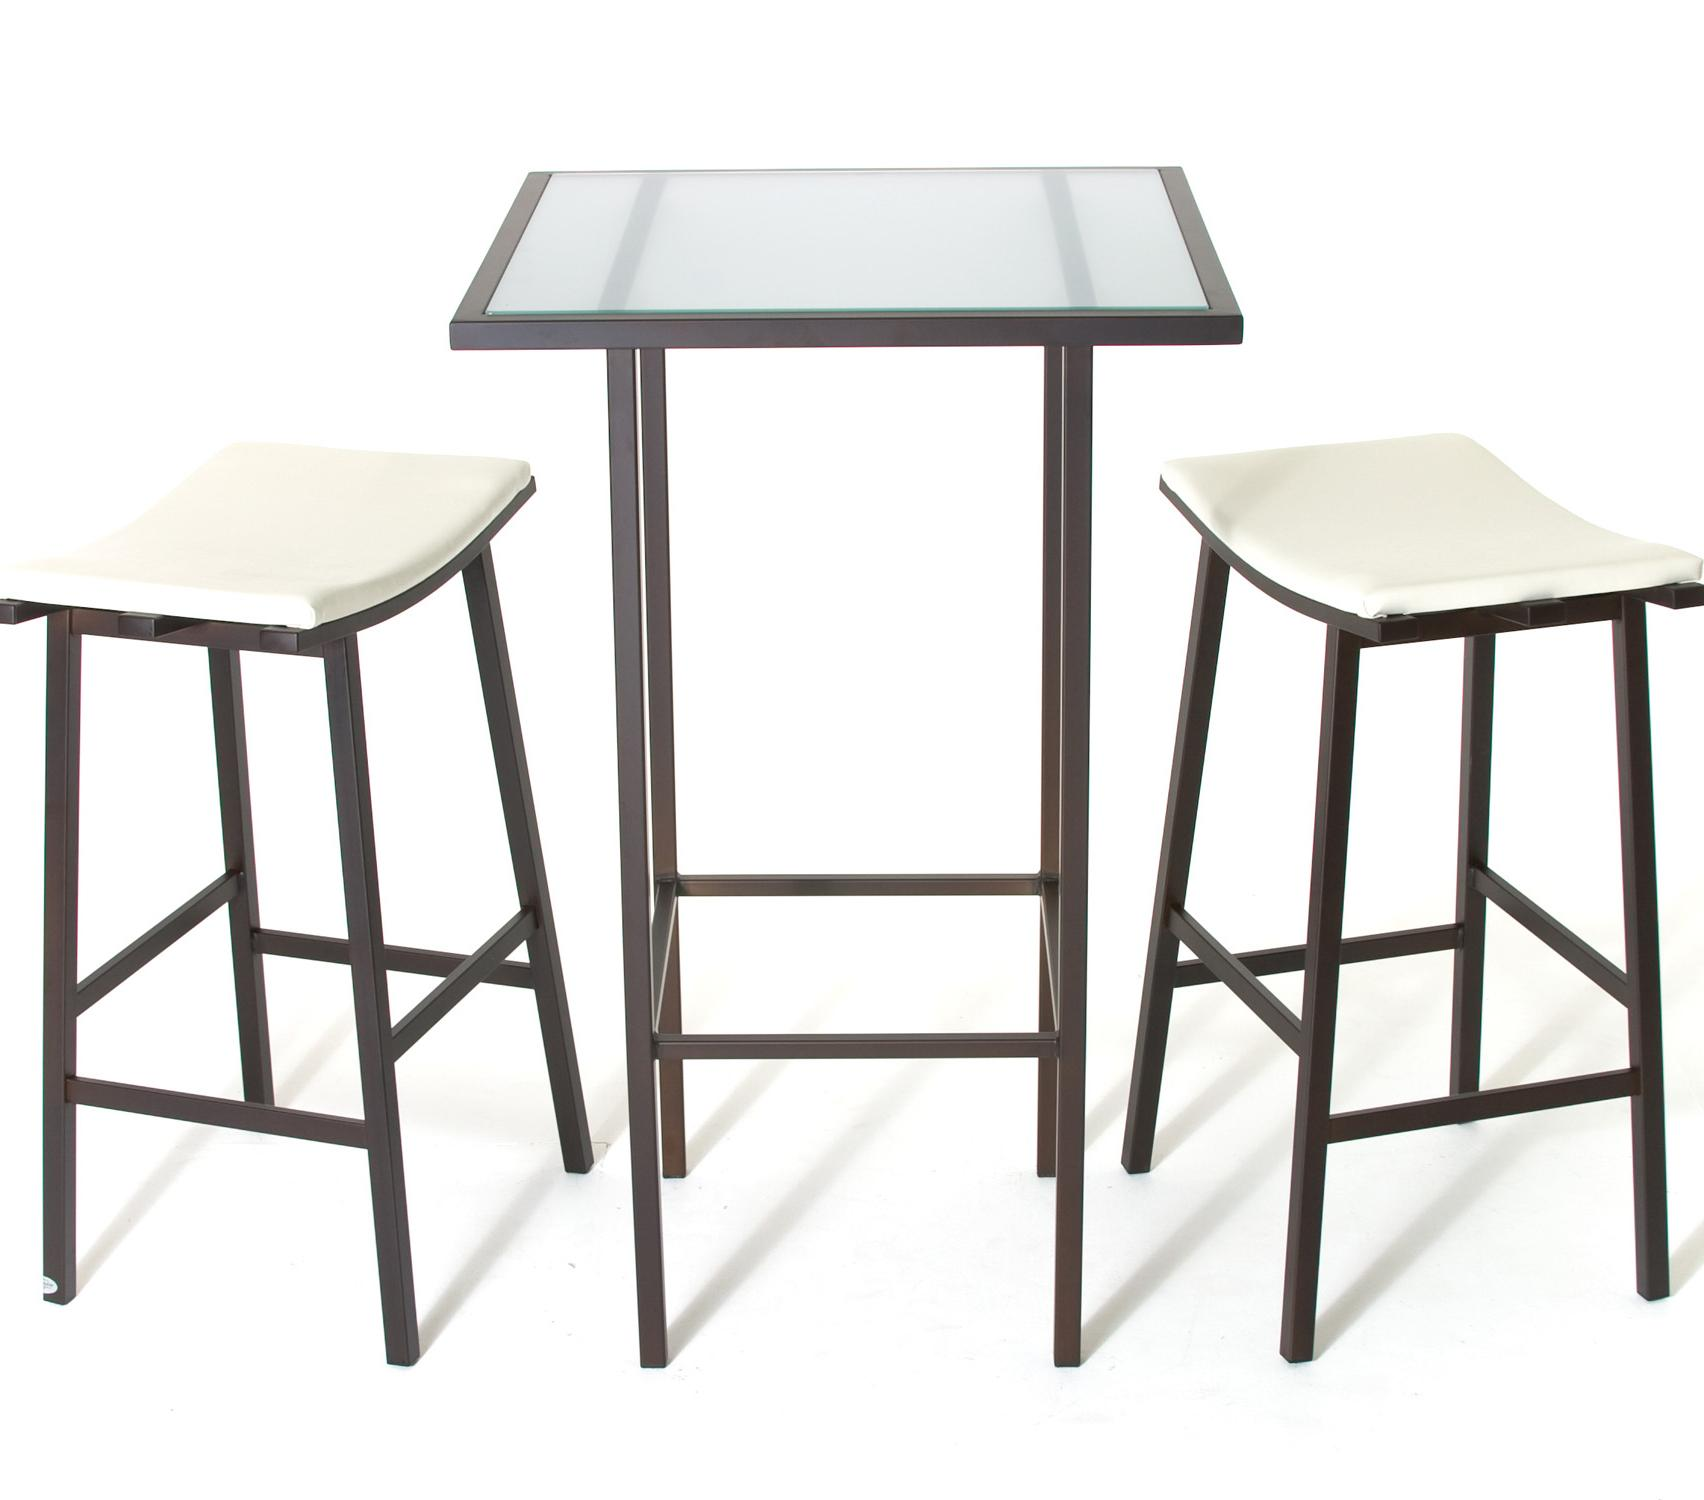 Amisco Aden Dinette Contemporary Bar Height Table and Stools - Item Number: 50838+2X4033B